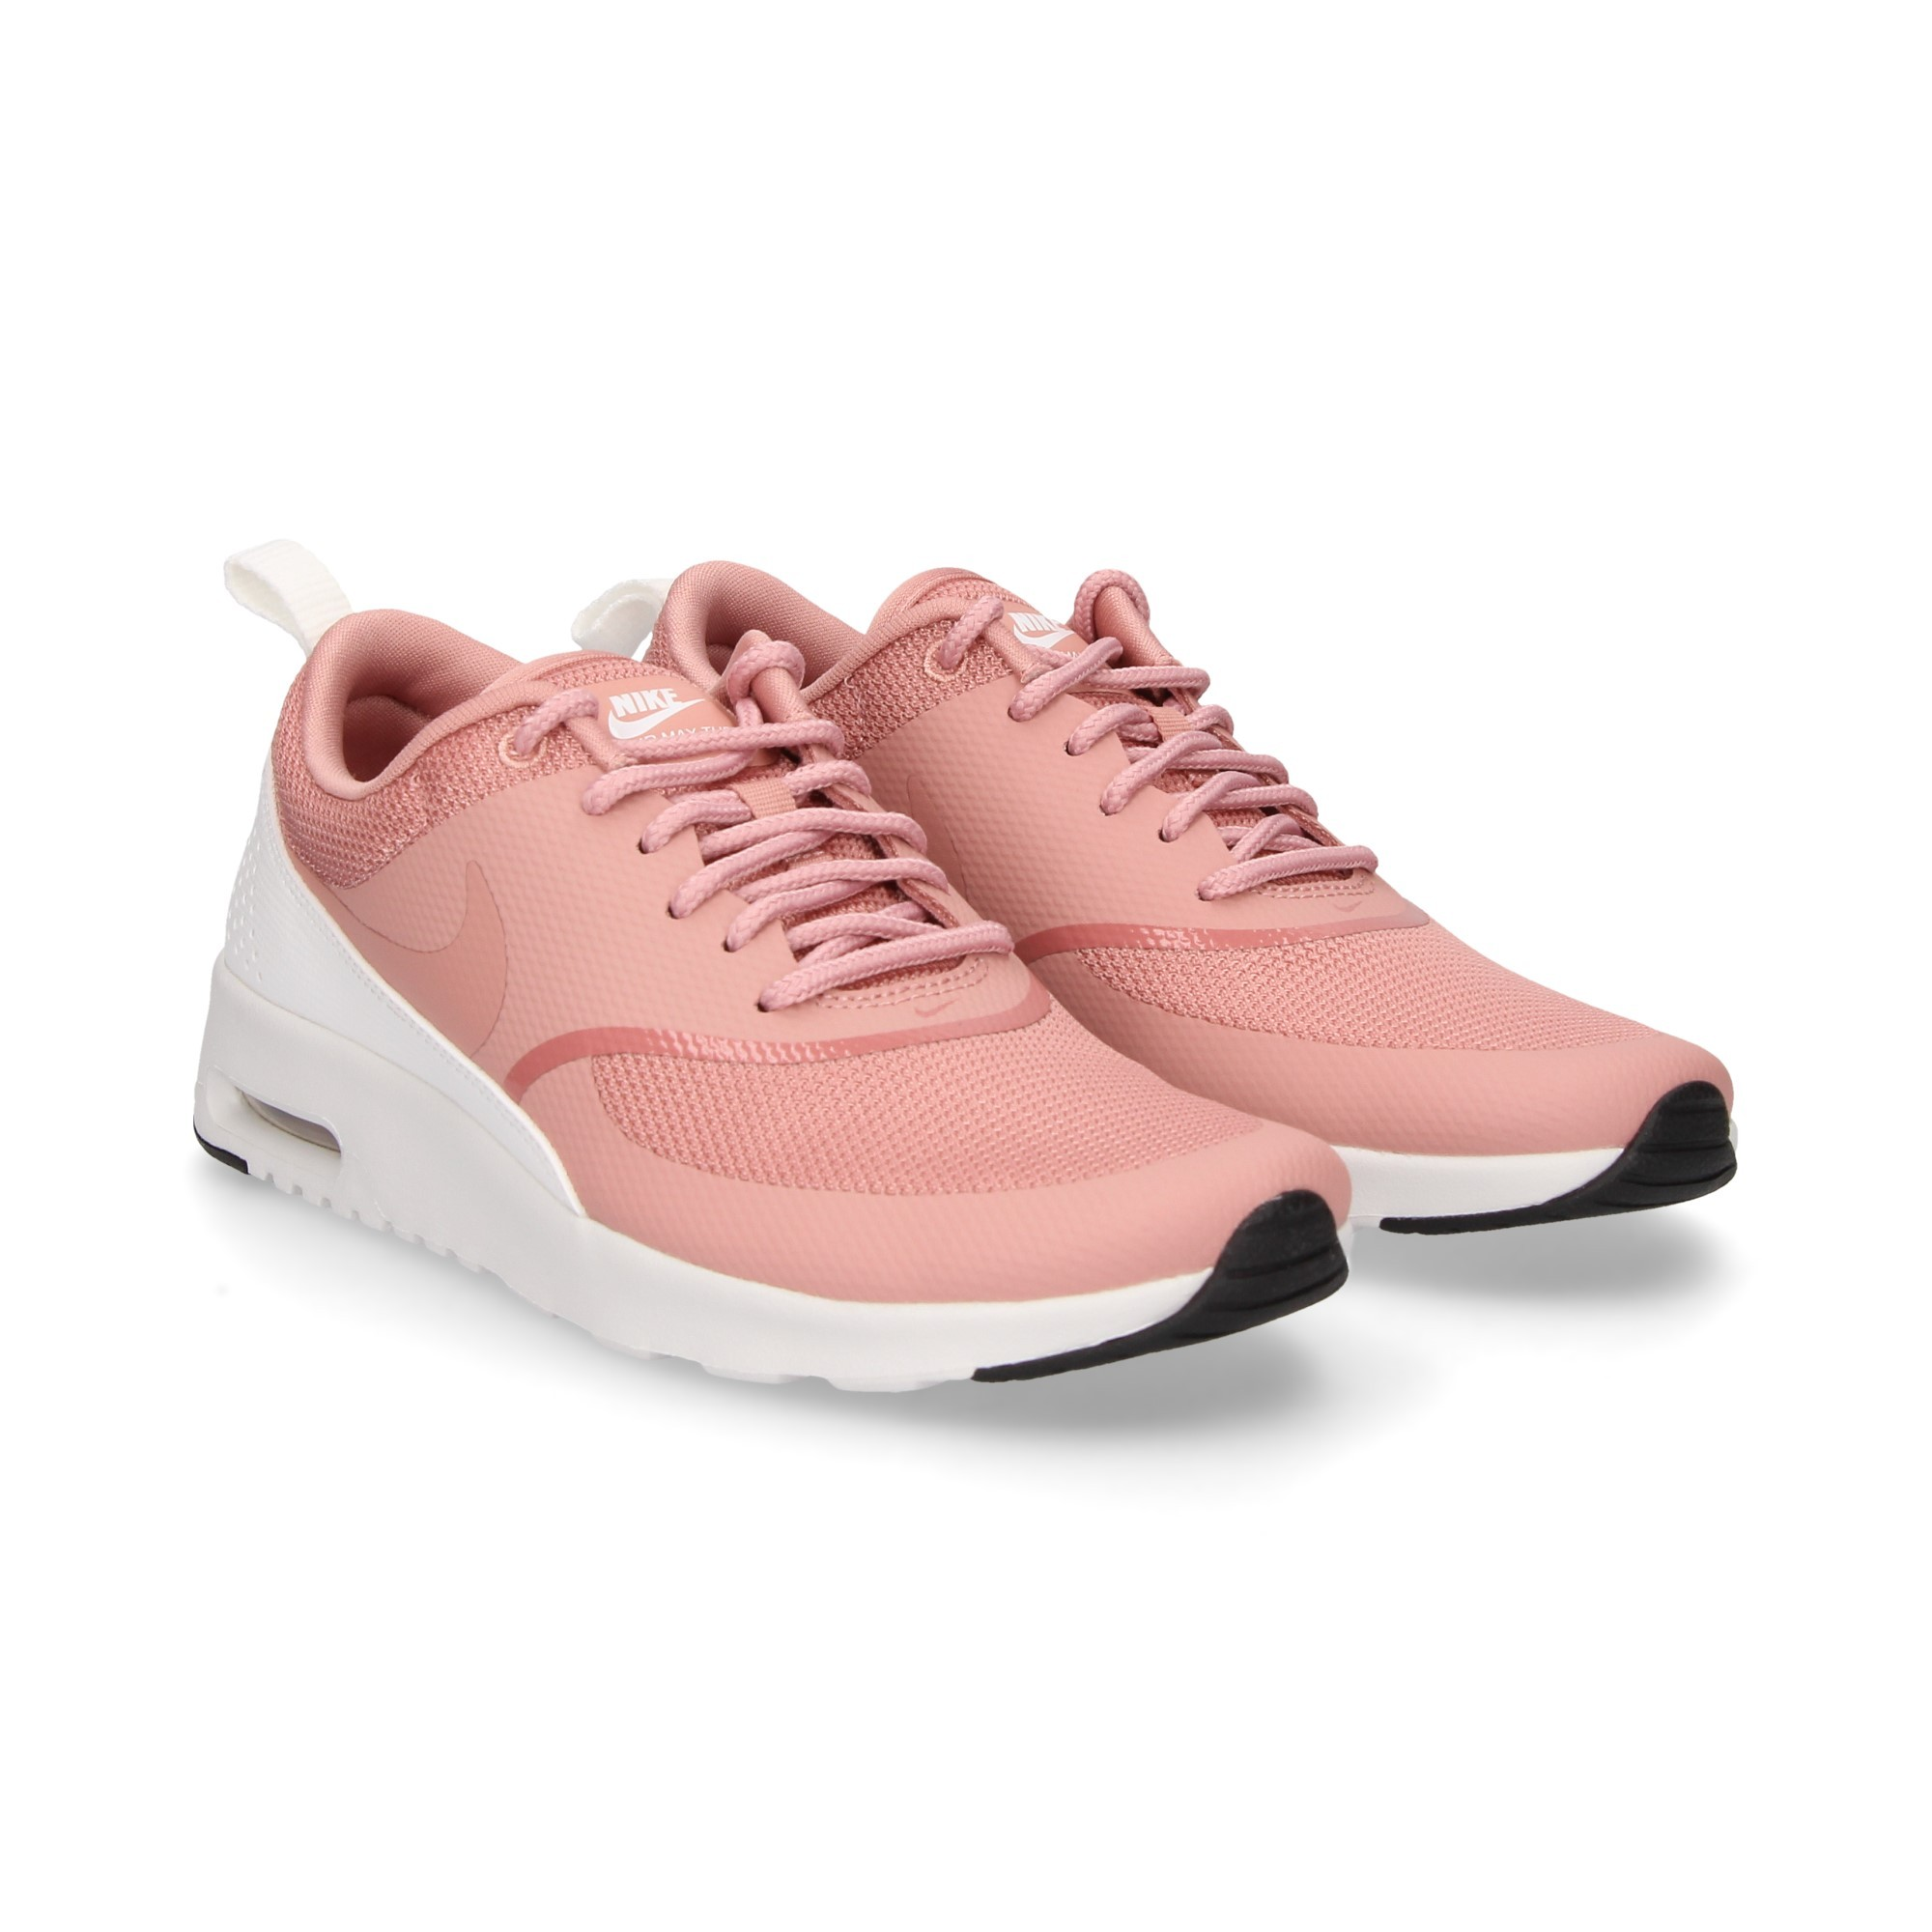 mil Auto melodía  NIKE Women's Sneakers 599409 614 ROSA